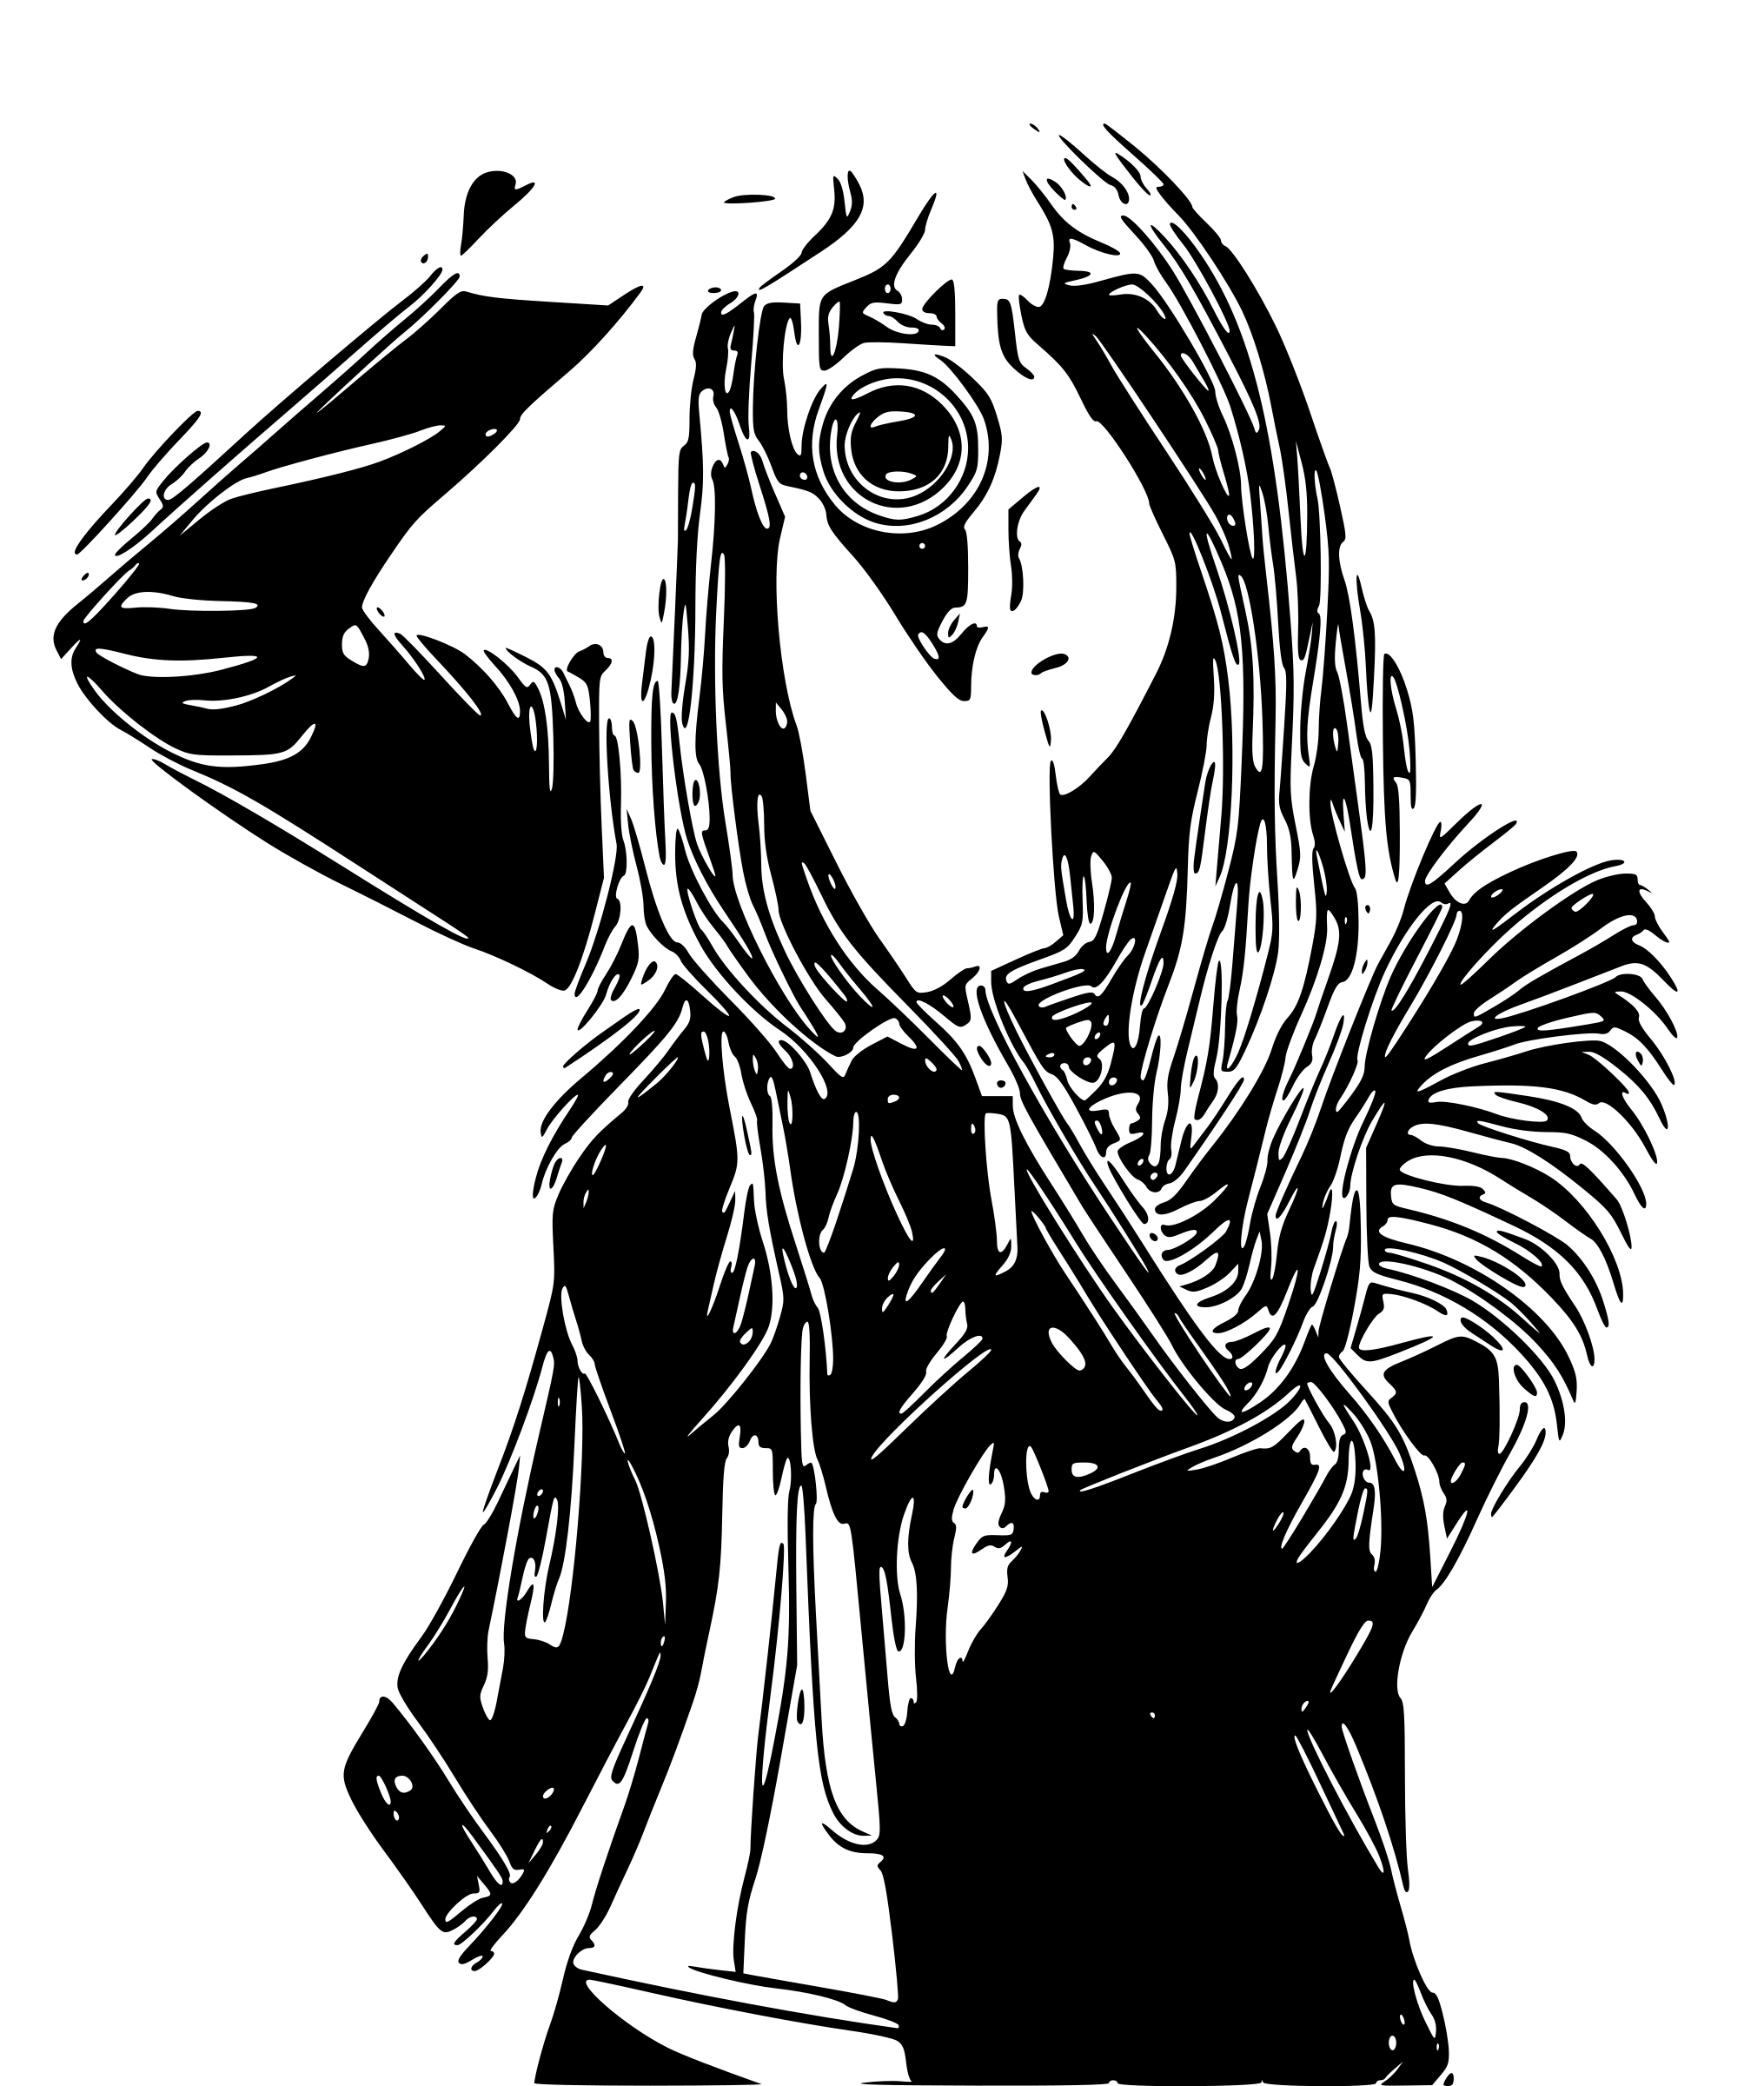 Camera lady clipart image svg transparent library Camera drawing free download on ayoqq cliparts svg transparent library